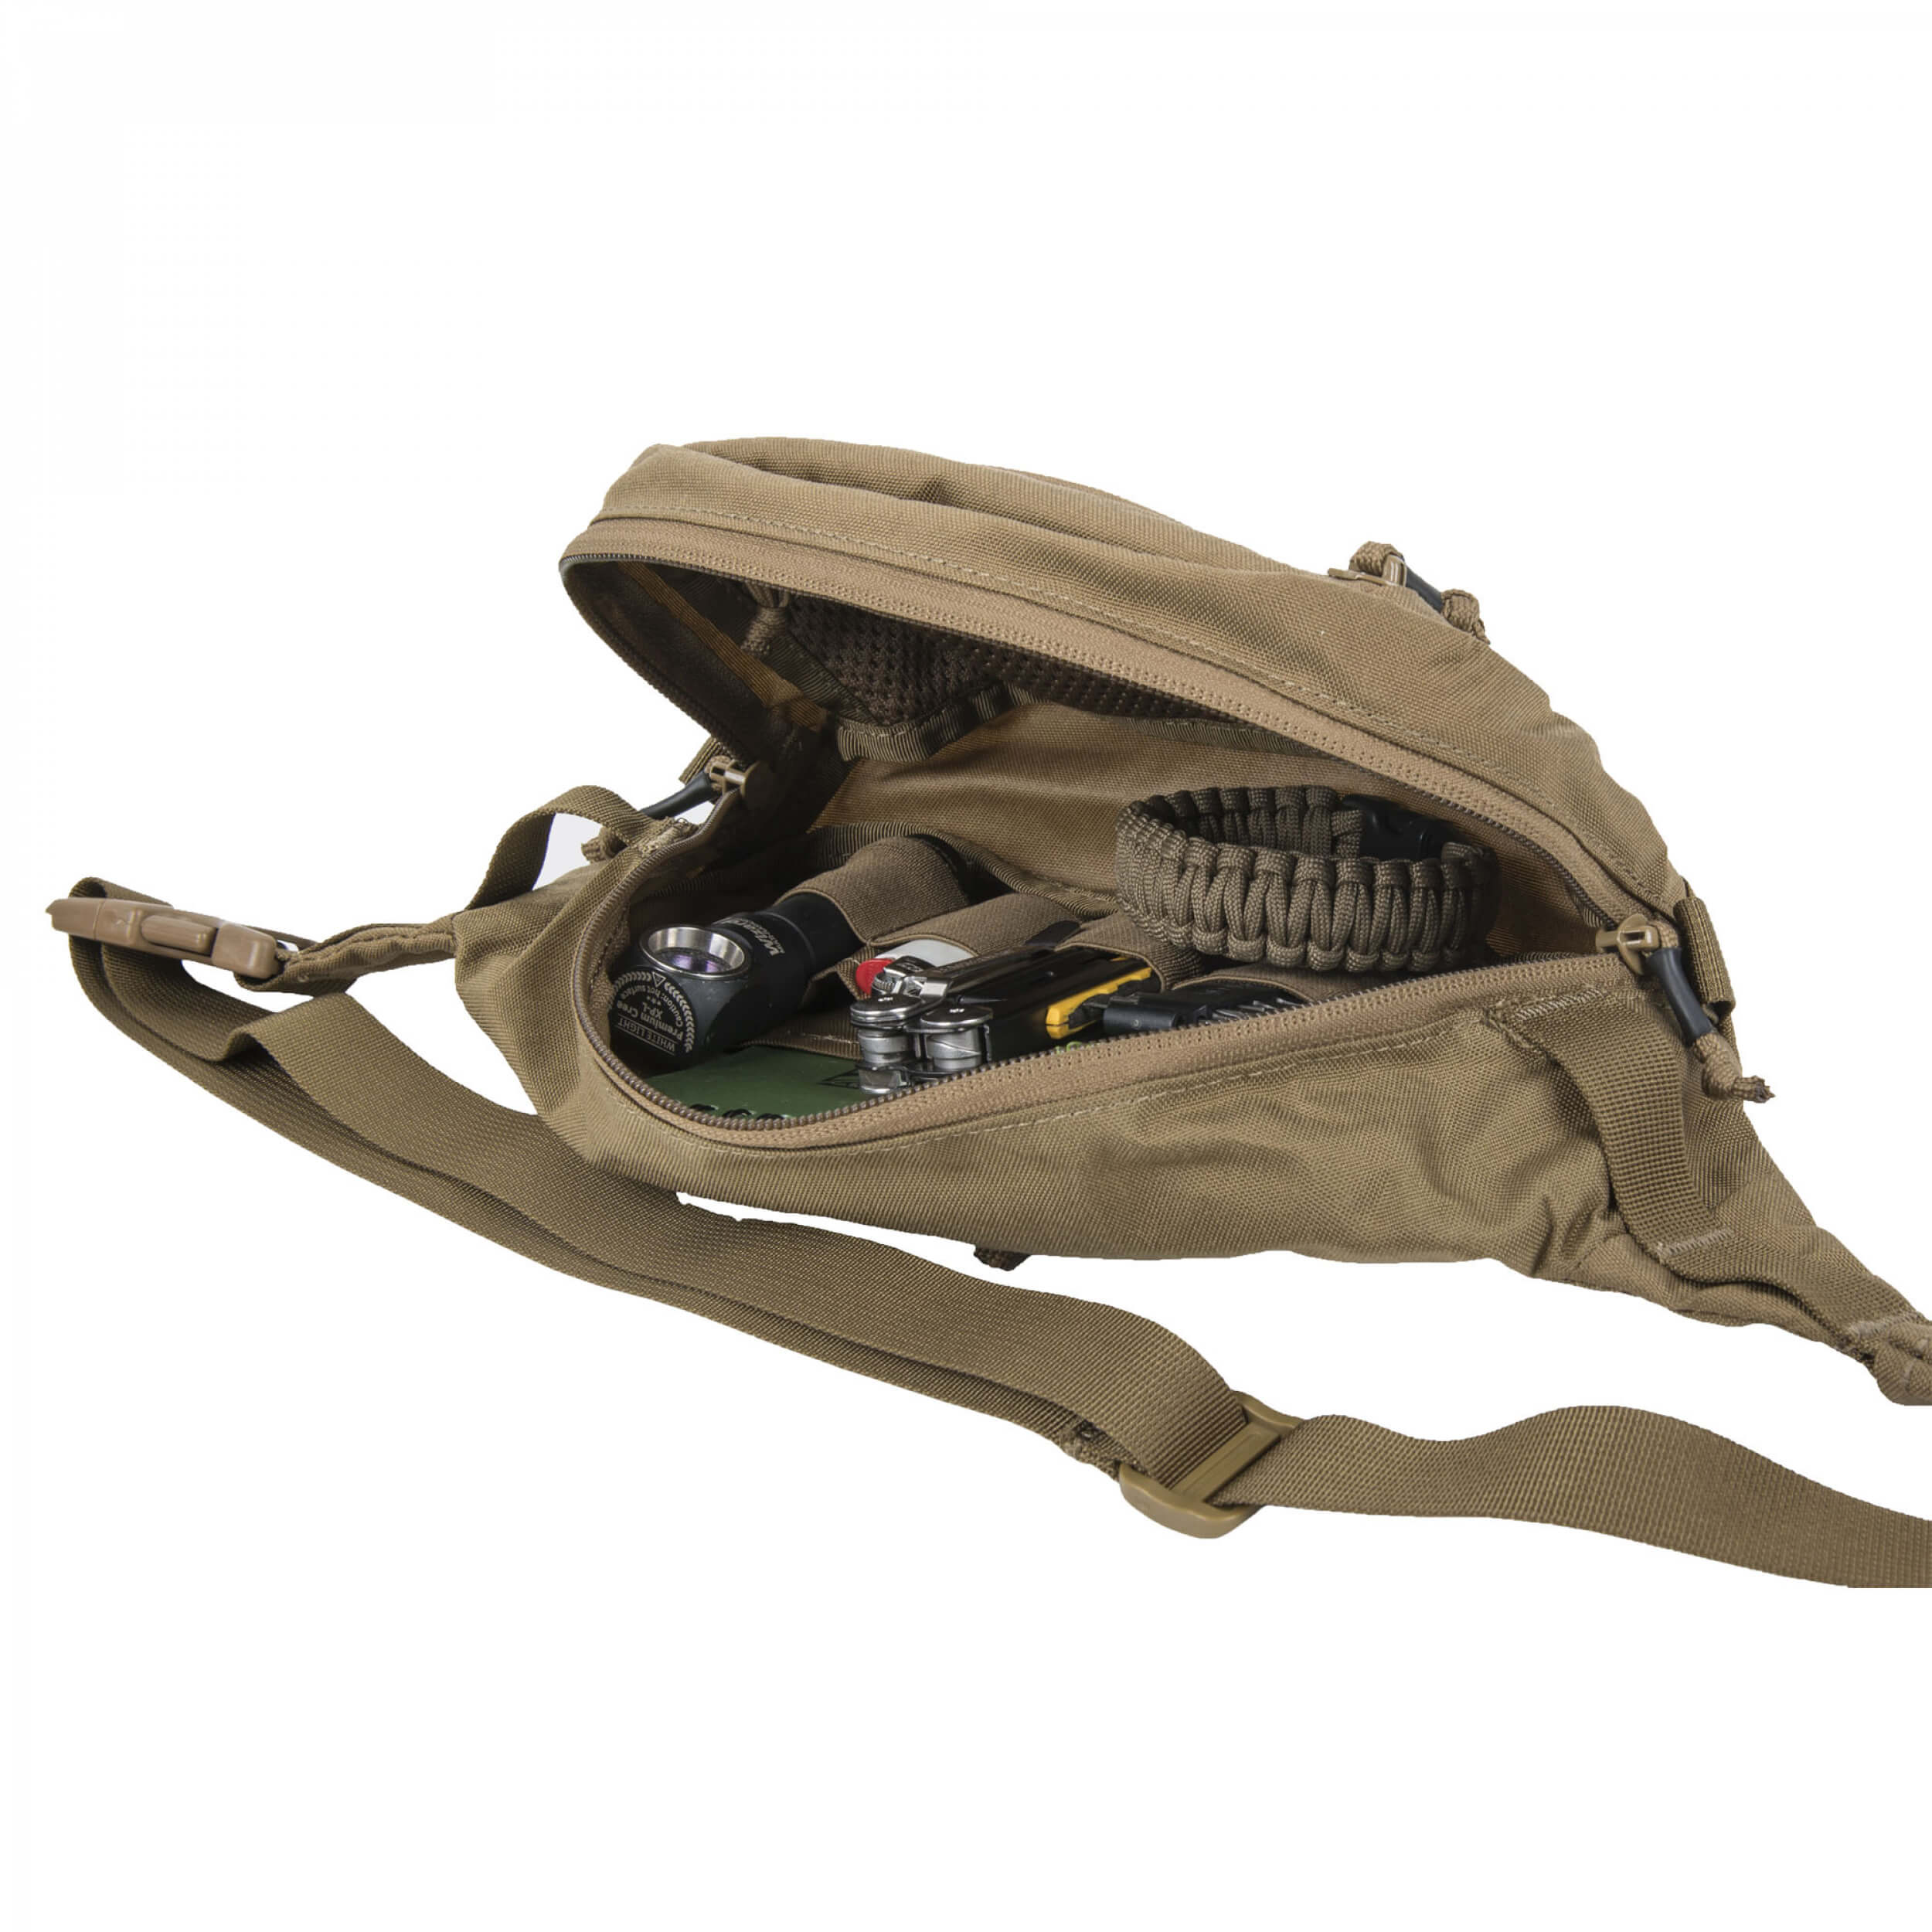 Helikon-Tex Waist Pack Bandicoot Adaptive Green / Coyote A